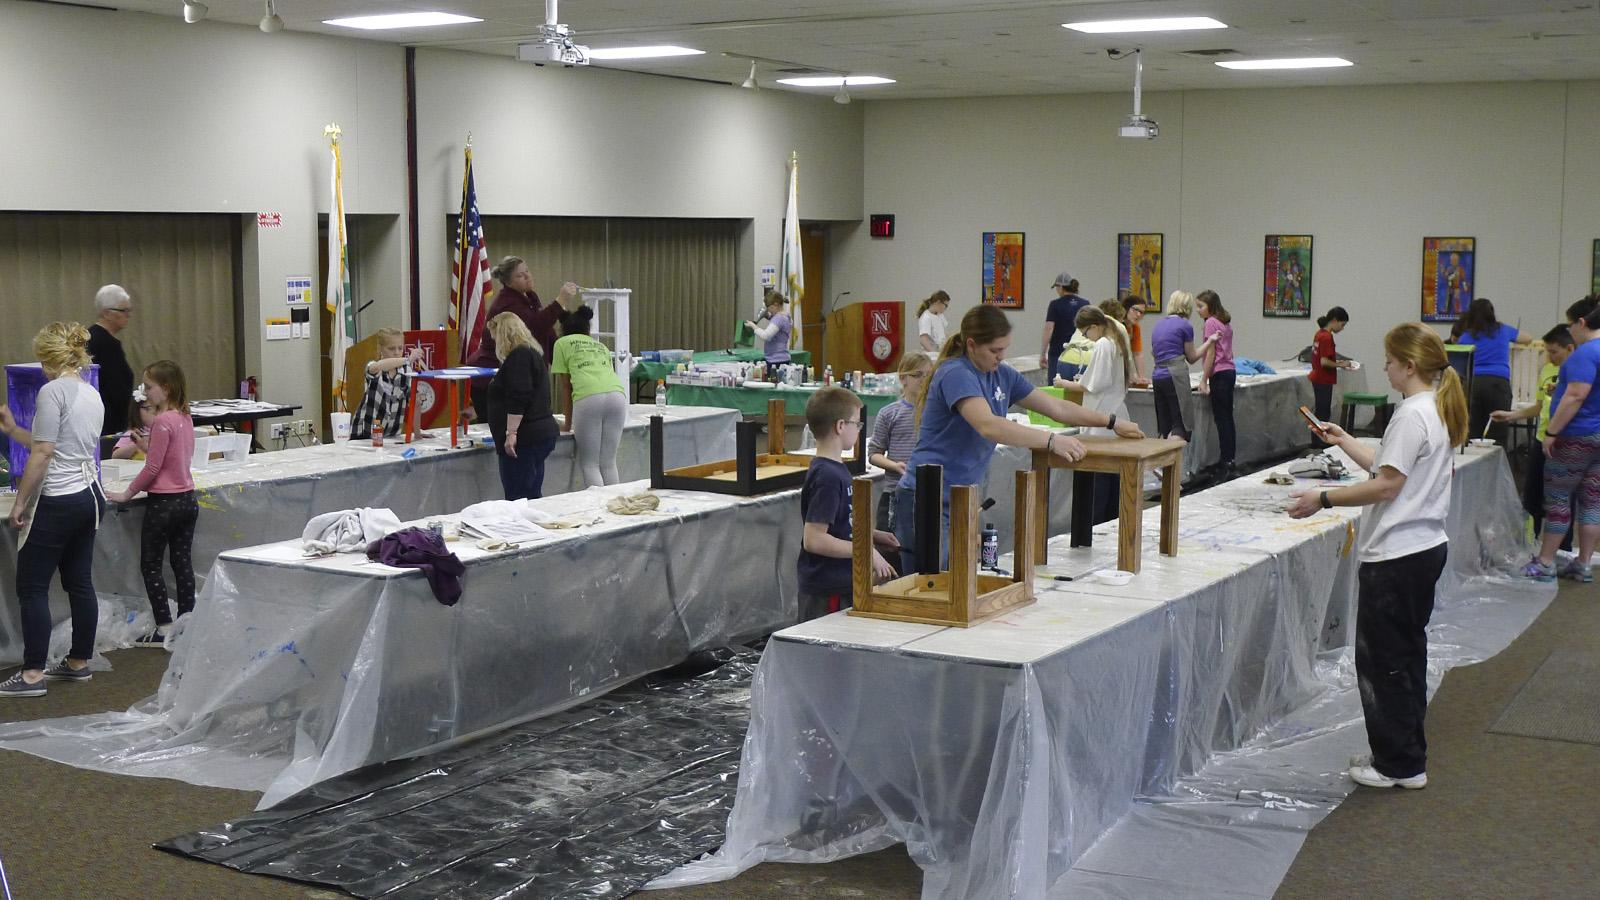 Room of youth and adults painting furniture